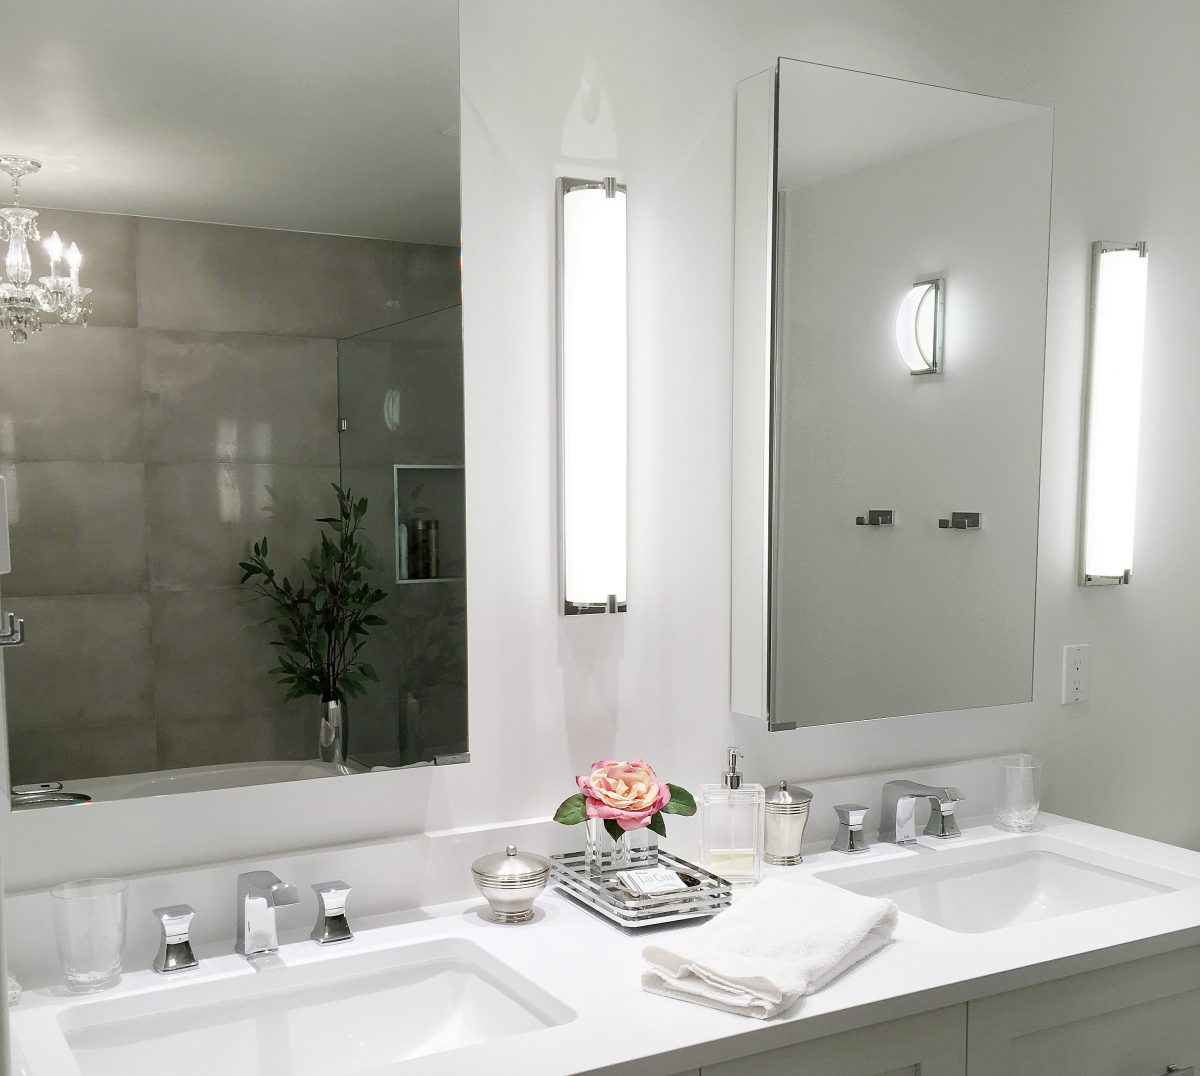 Norburn Lighting and Bath, ROOM TIPS